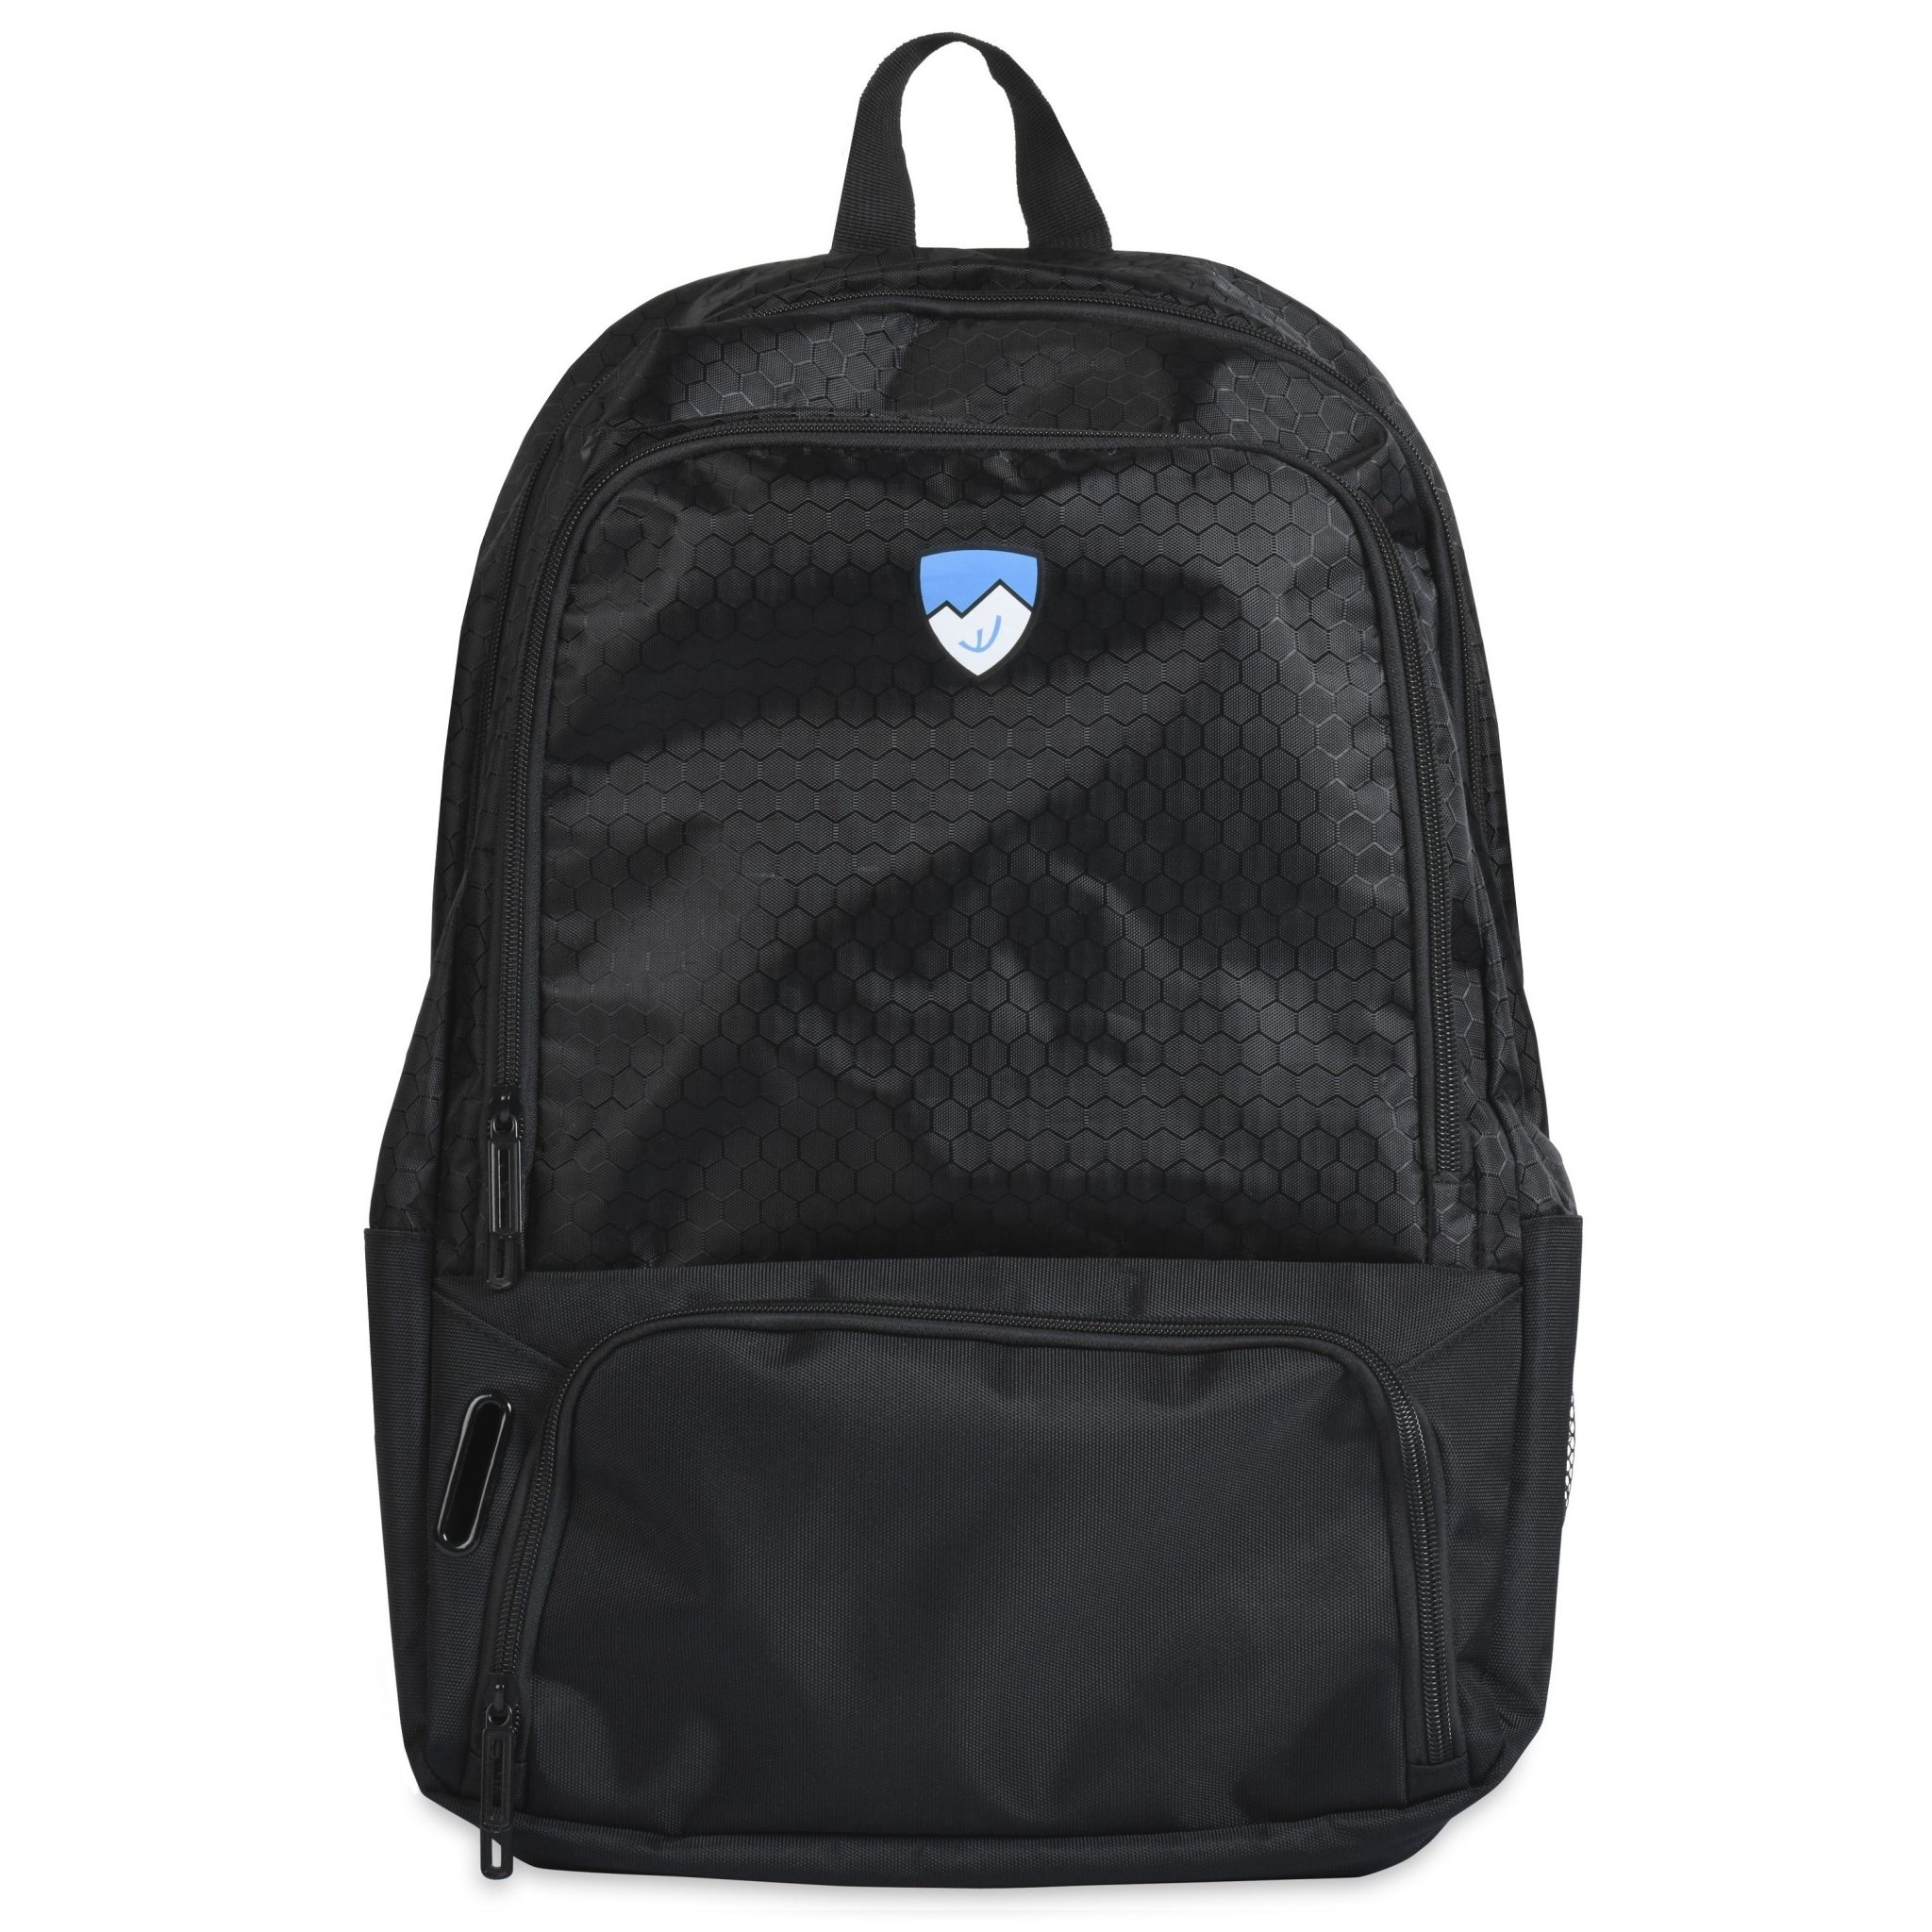 Hard Work Sports Soccer Backpack With Ball Compartment